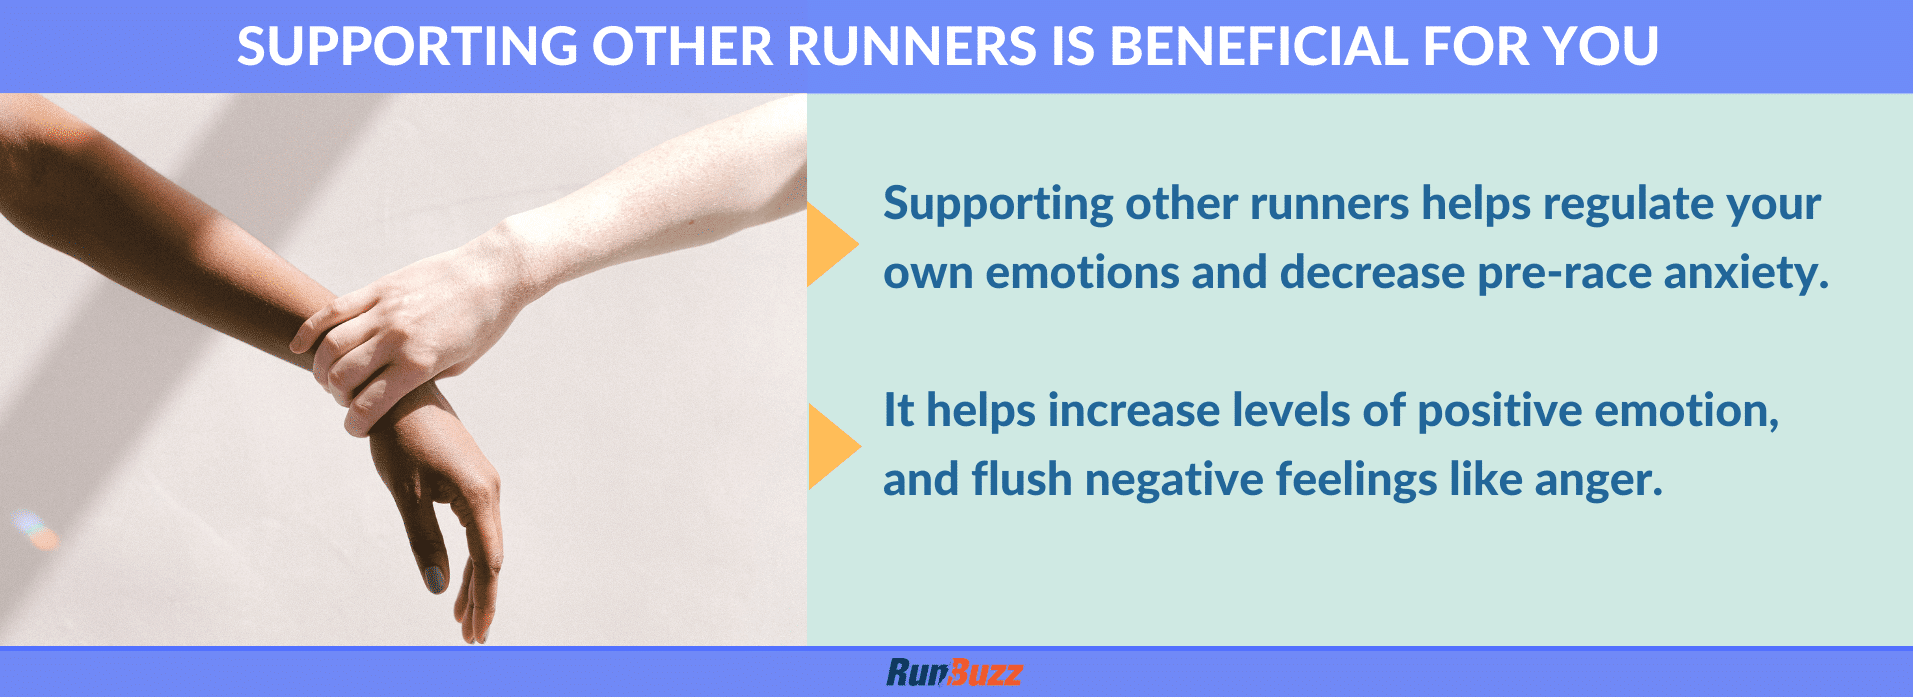 Supporting-other-runners-is-beneficial-for-you